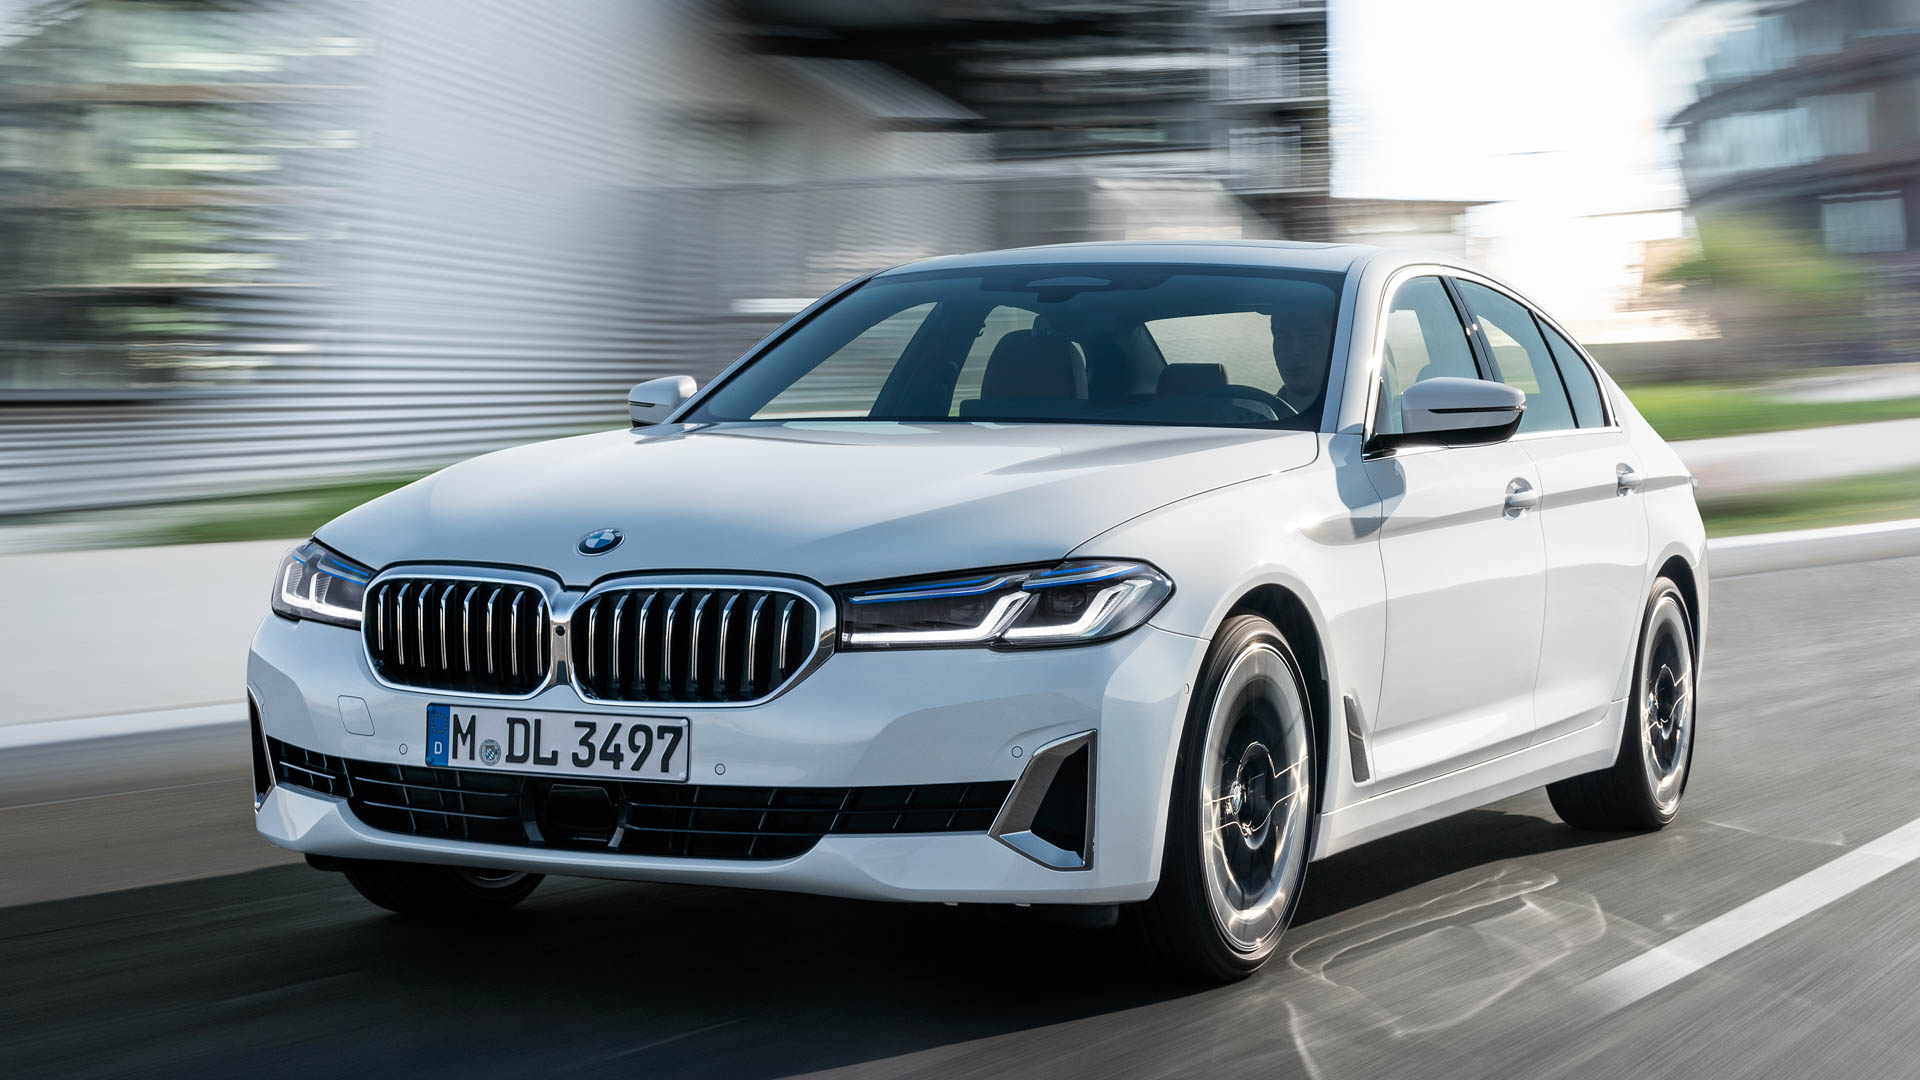 BMW 5 Series LCI vs Audi A6 8